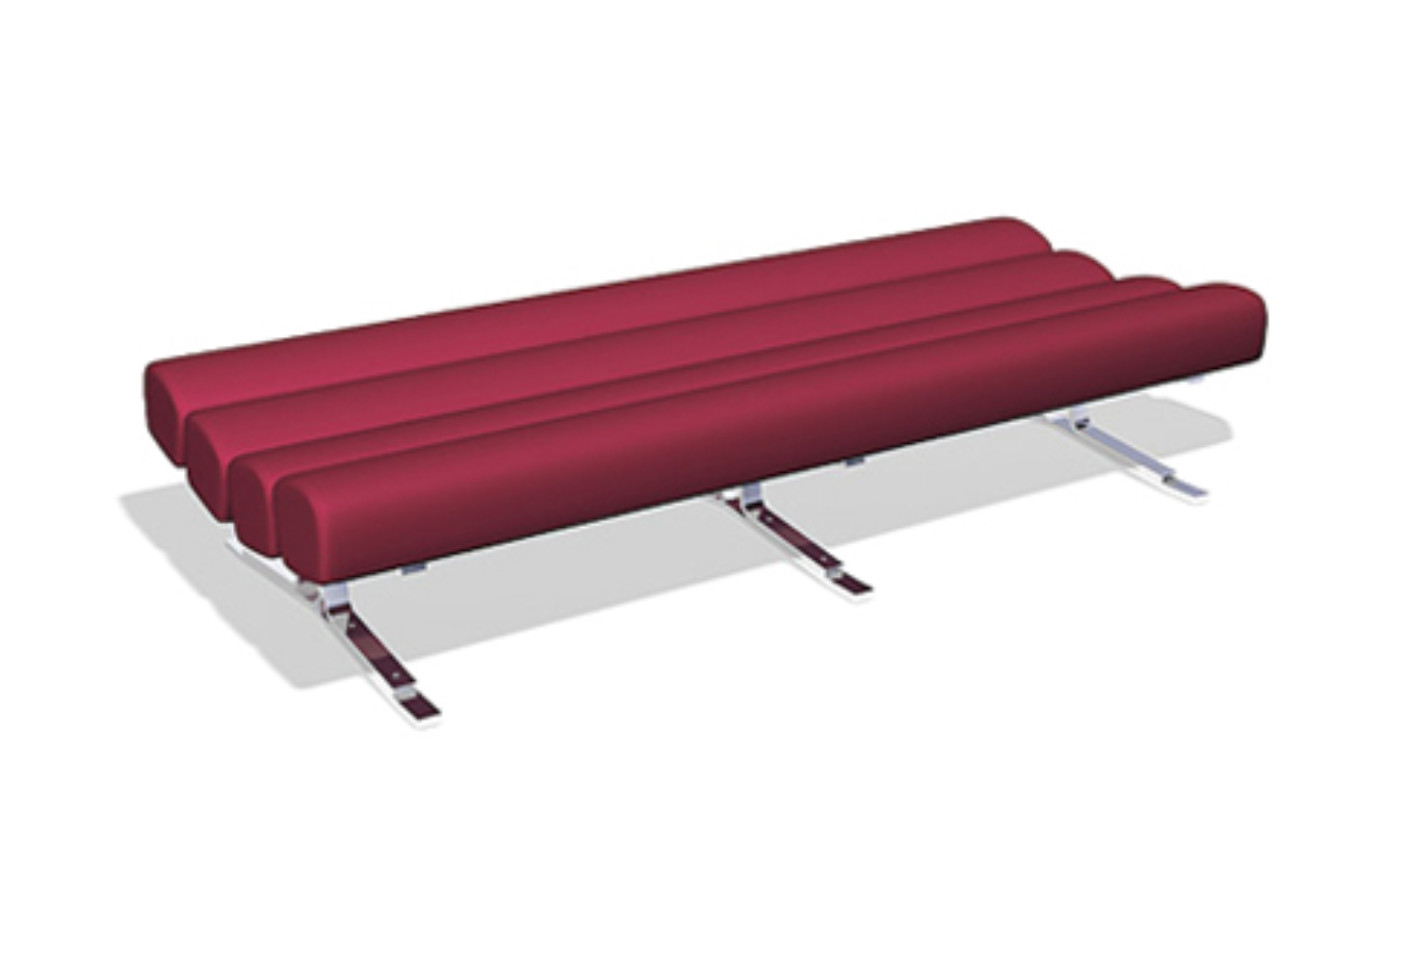 Wp05 Bench Daybed By Twentytwentyone Stylepark